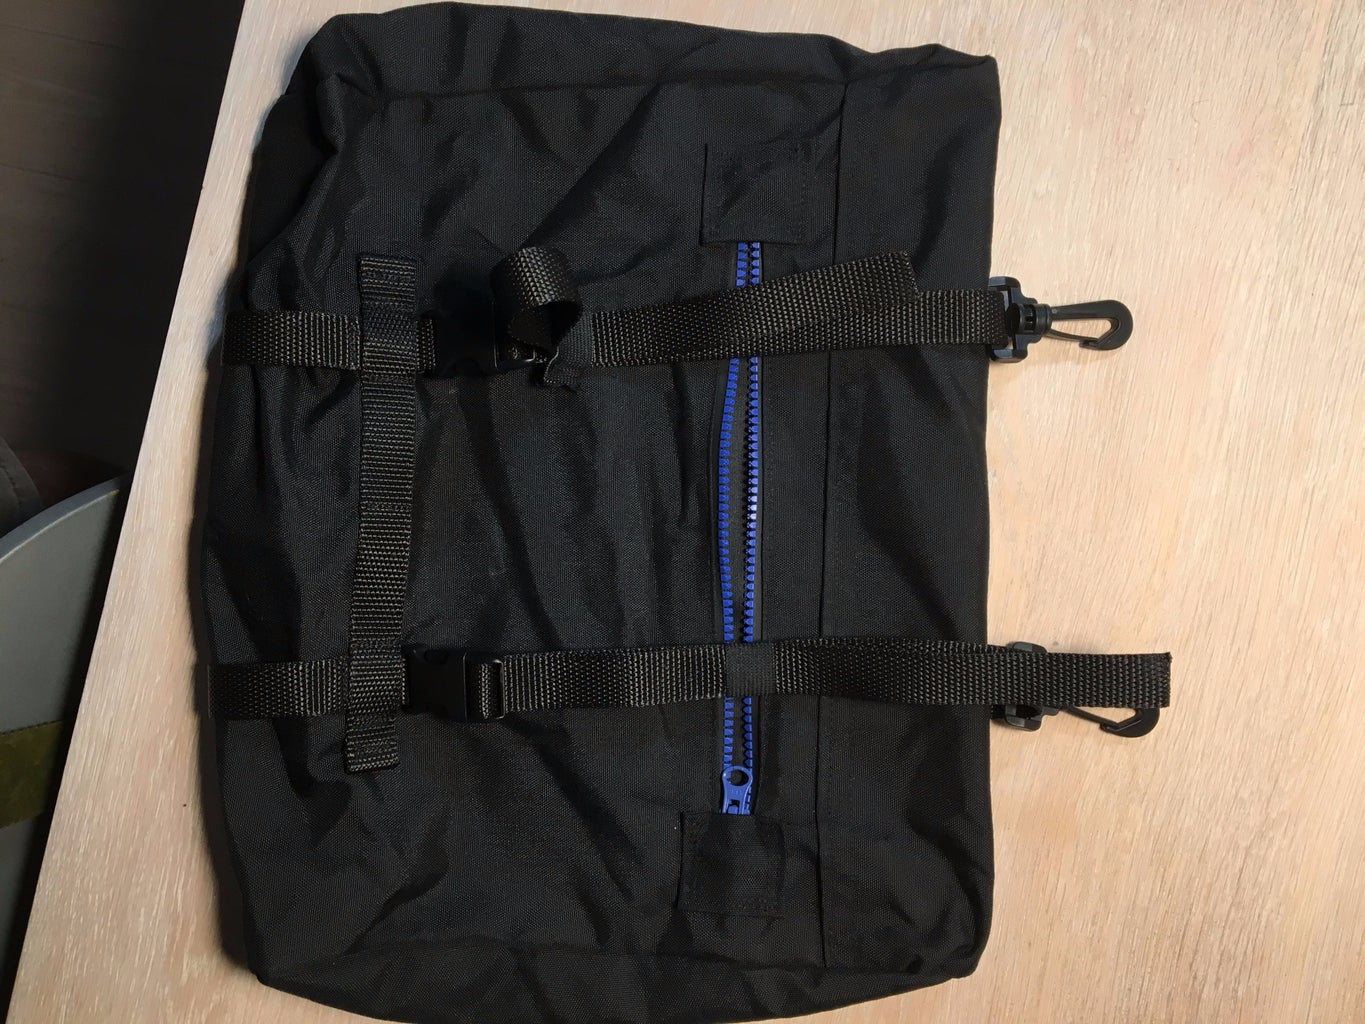 The Frontbag